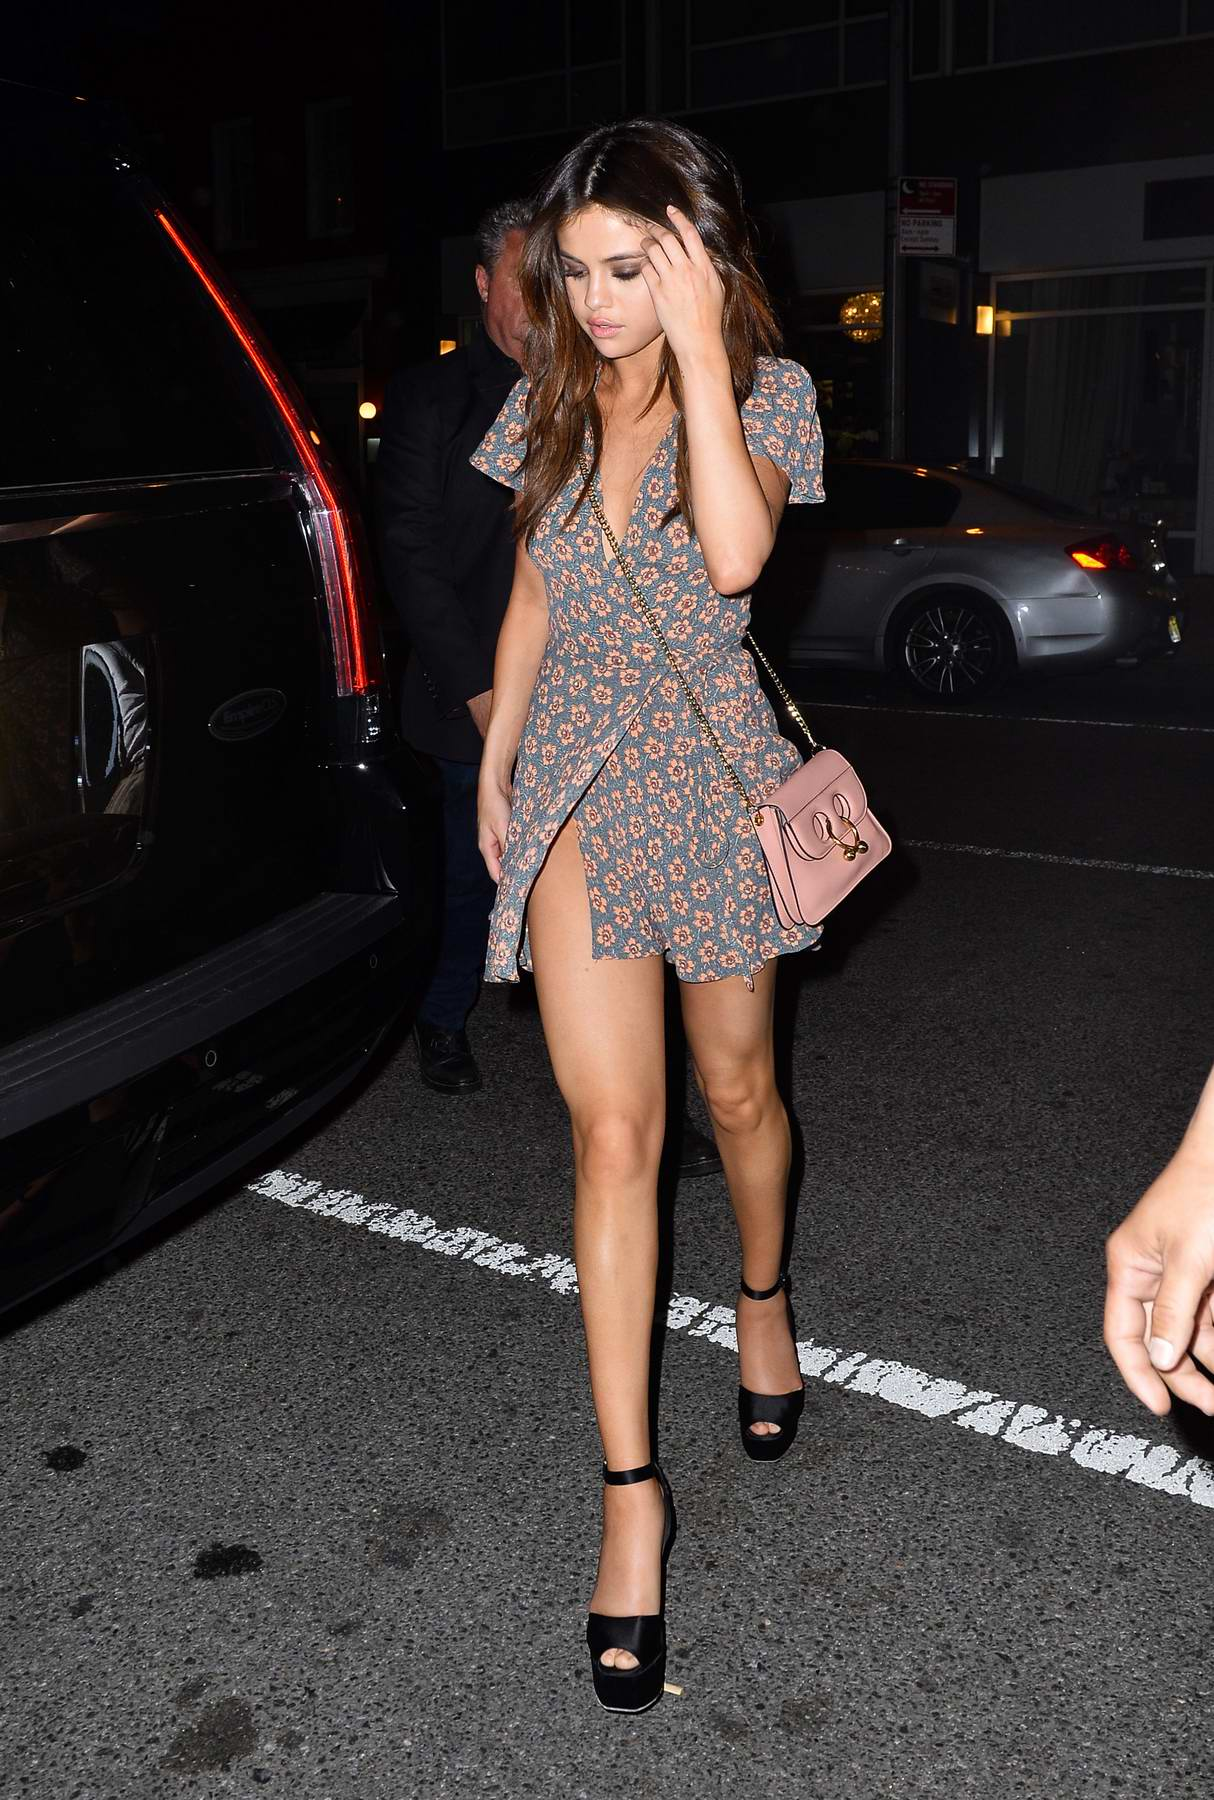 Selena Gomez Out In A Fl Dress For Dinner At The Park Side Restaurant Queens New York